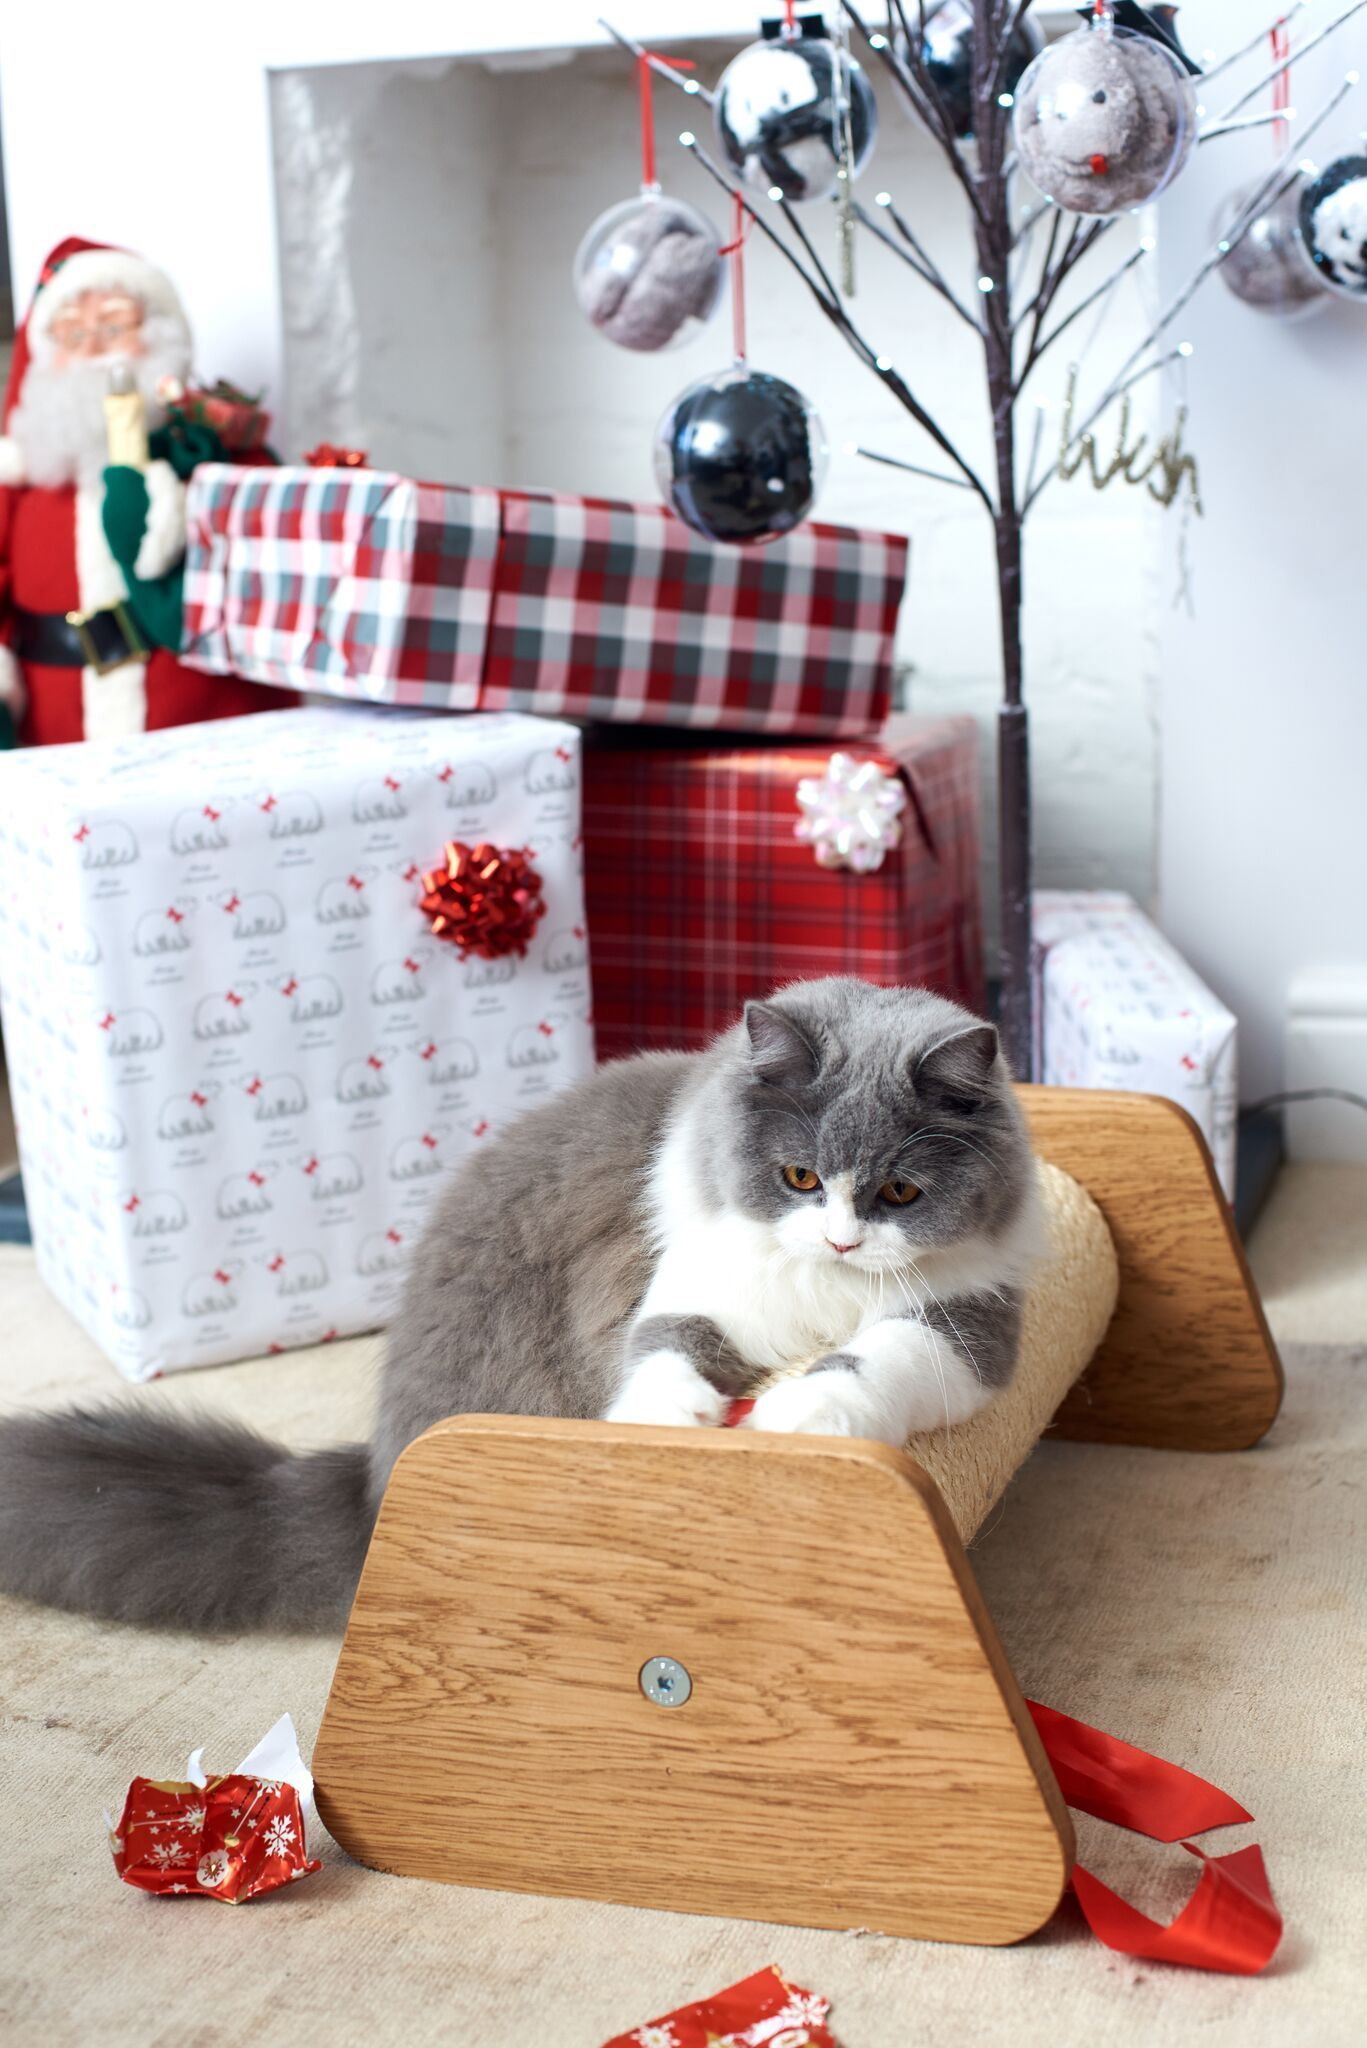 How About A Little Something For Your Cat To Open On Christmas Morning Our New Piccolo Floor Cat Scratcher Cat Scratcher Cat Tree Scratching Post Scratcher